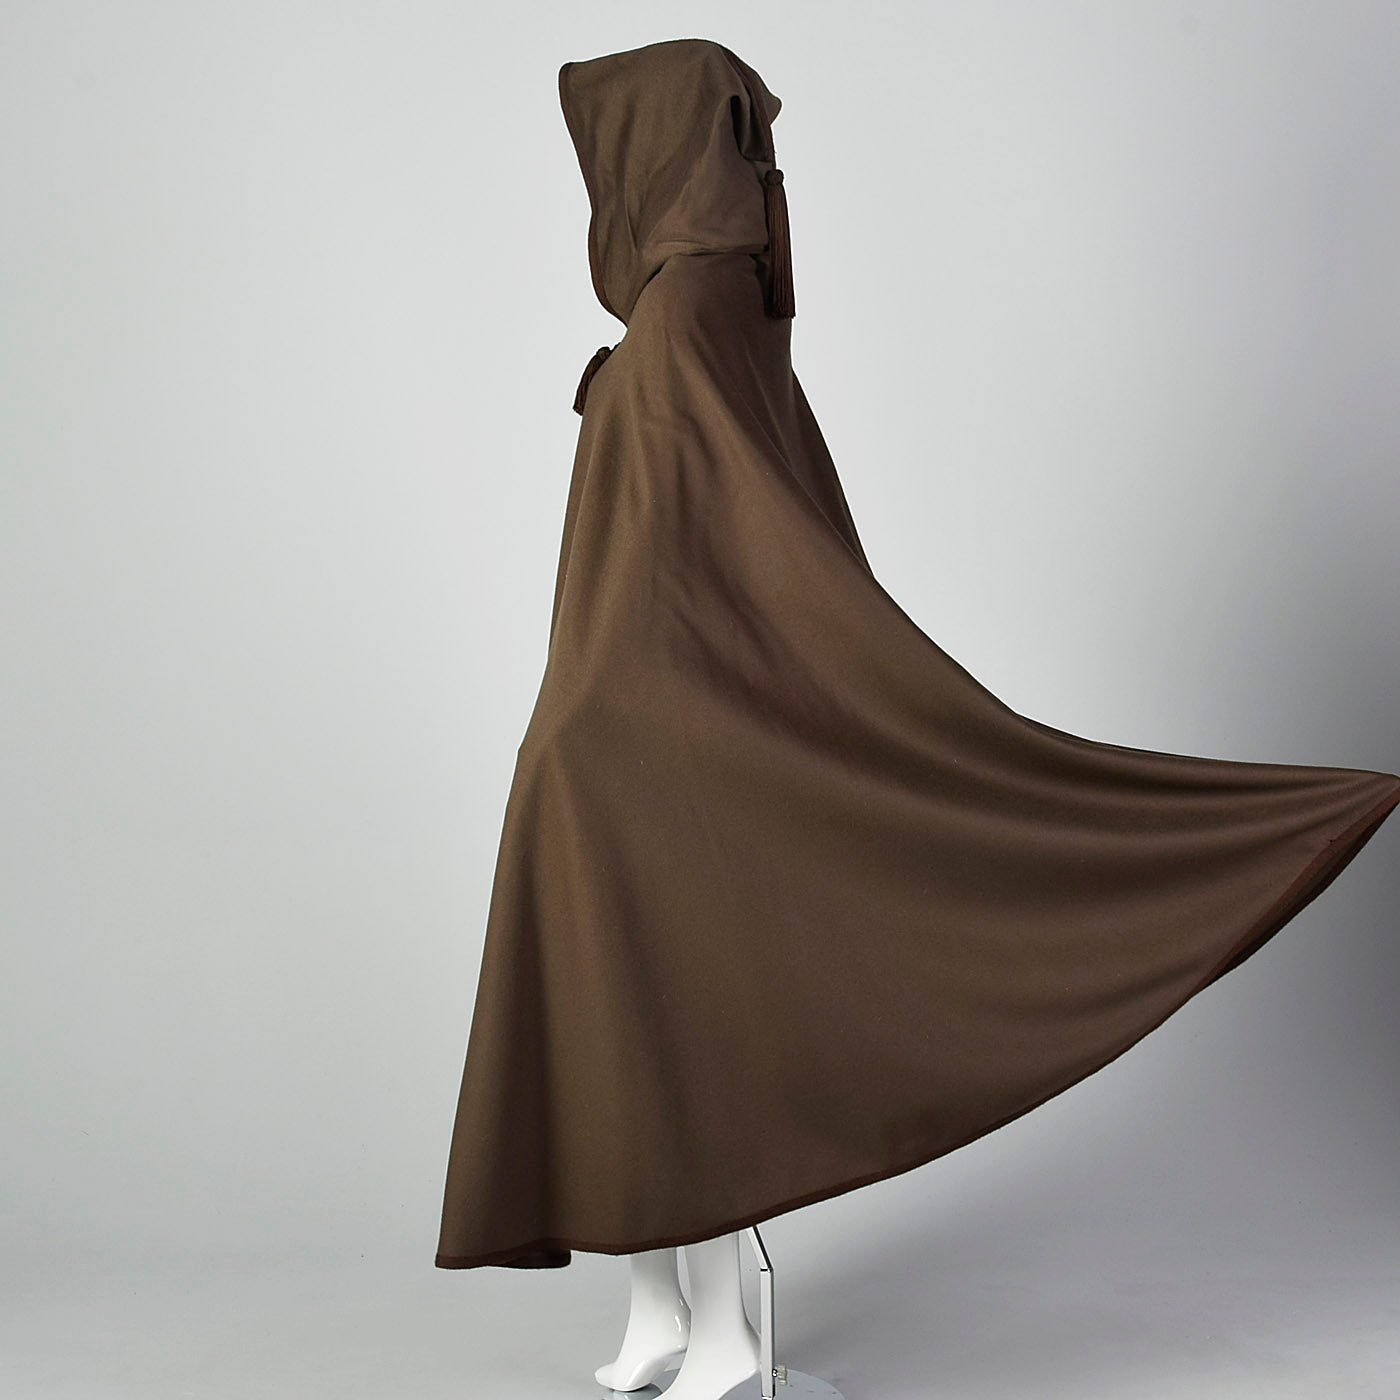 1976 Yves Saint Laurent Russian Collection Hooded Cape